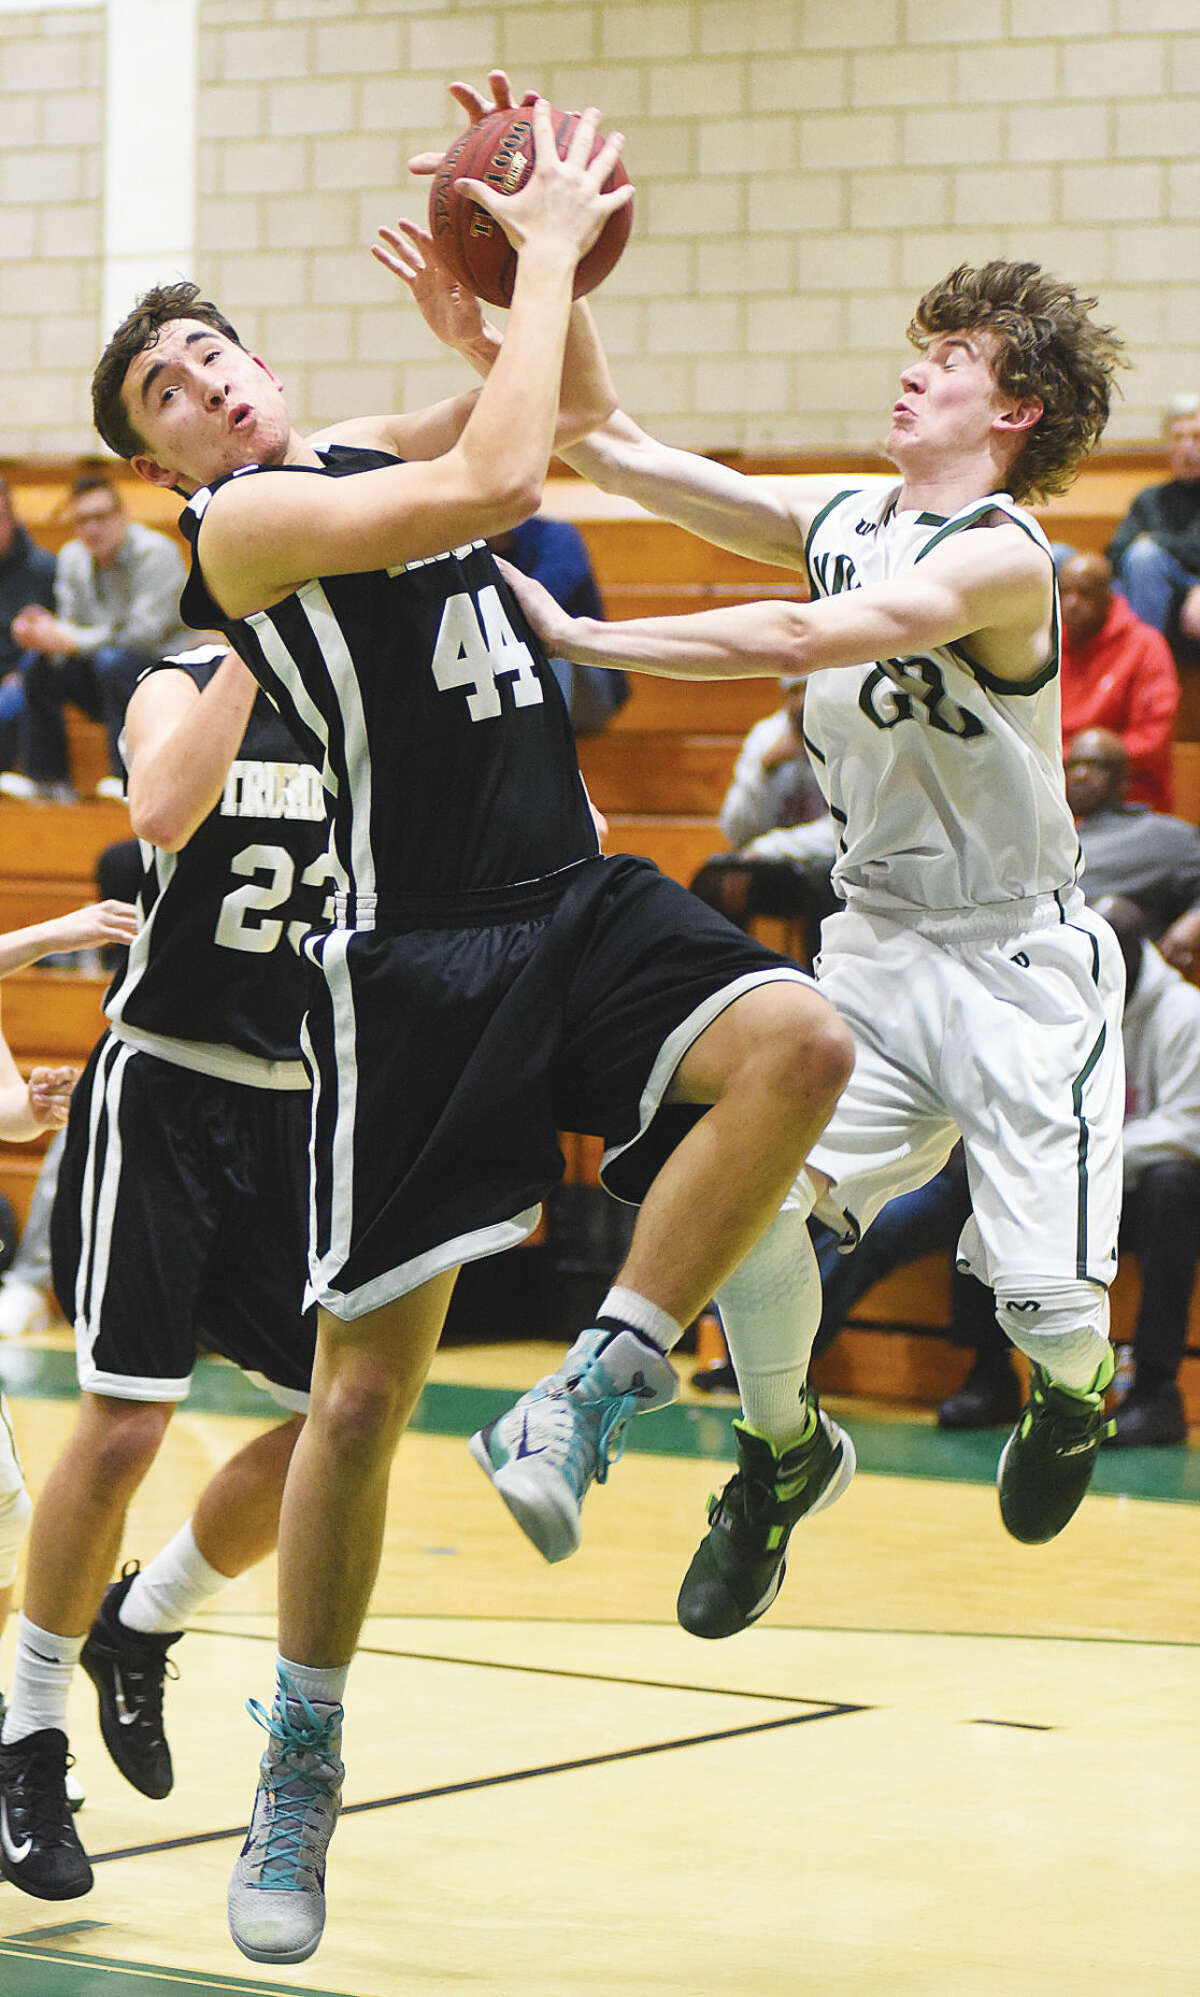 Hour photo/John Nash - Norwalk's Ryan Searles, right, scraps with Trumbull's Alex Recker during the second half of Monday's FCIAC boys basketball game in Norwalk.